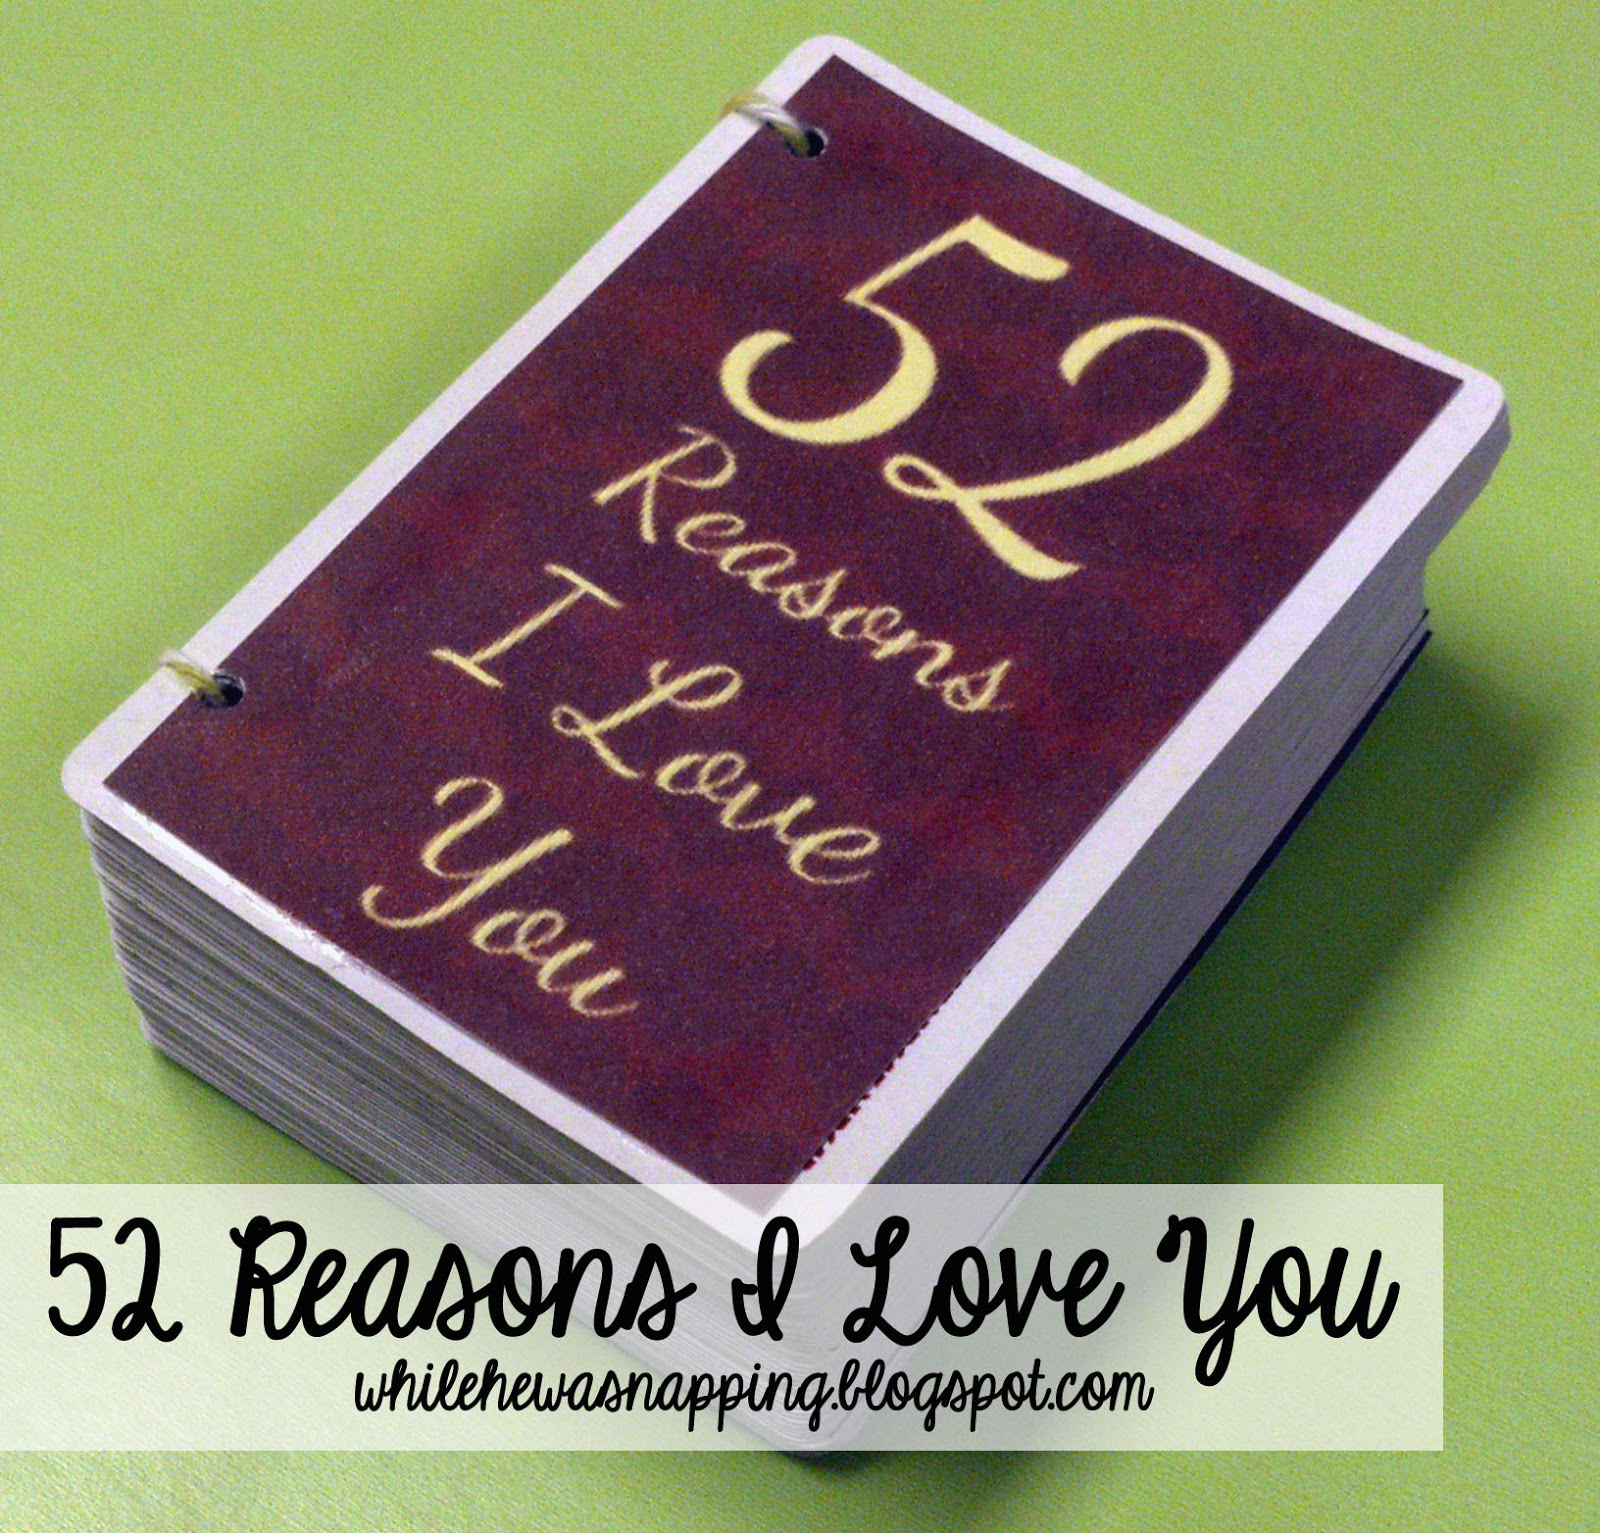 52 reasons i love you template free download - 52 reasons why i love you while he was napping